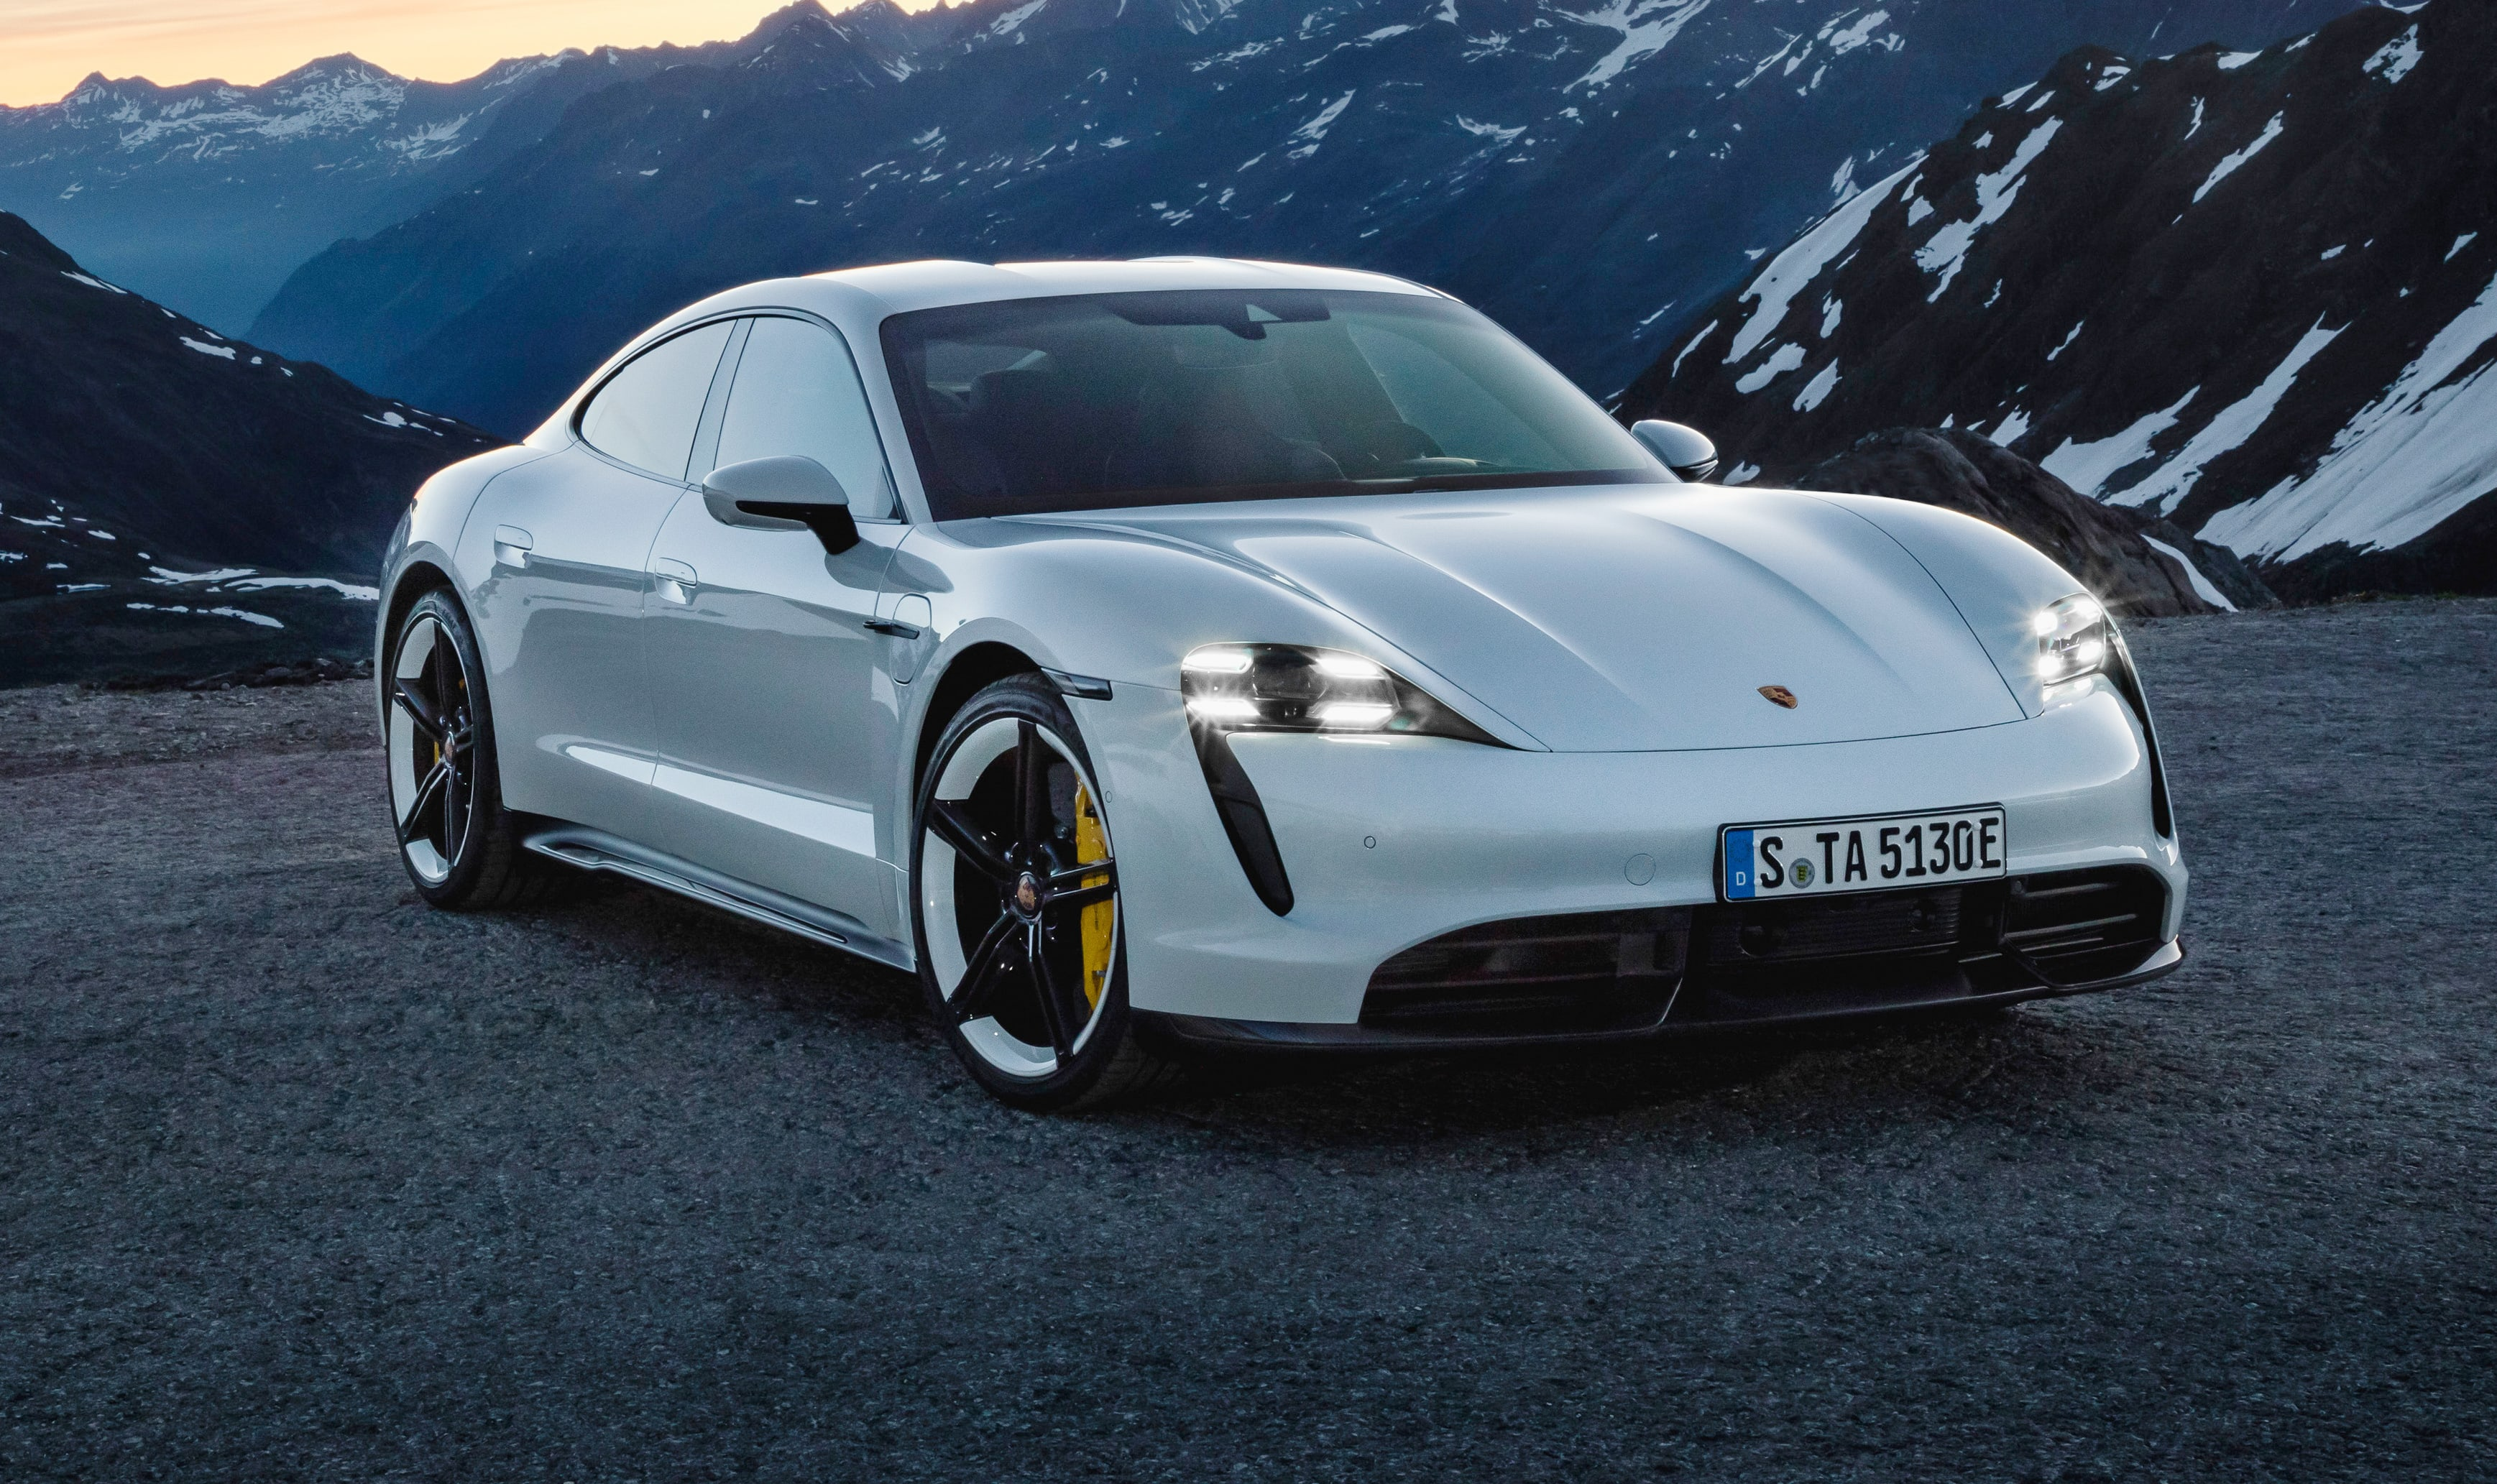 Porsche Taycan Turbo S Equals Bugatti Veyron Beats 911 Turbo S In Performance Test Caradvice